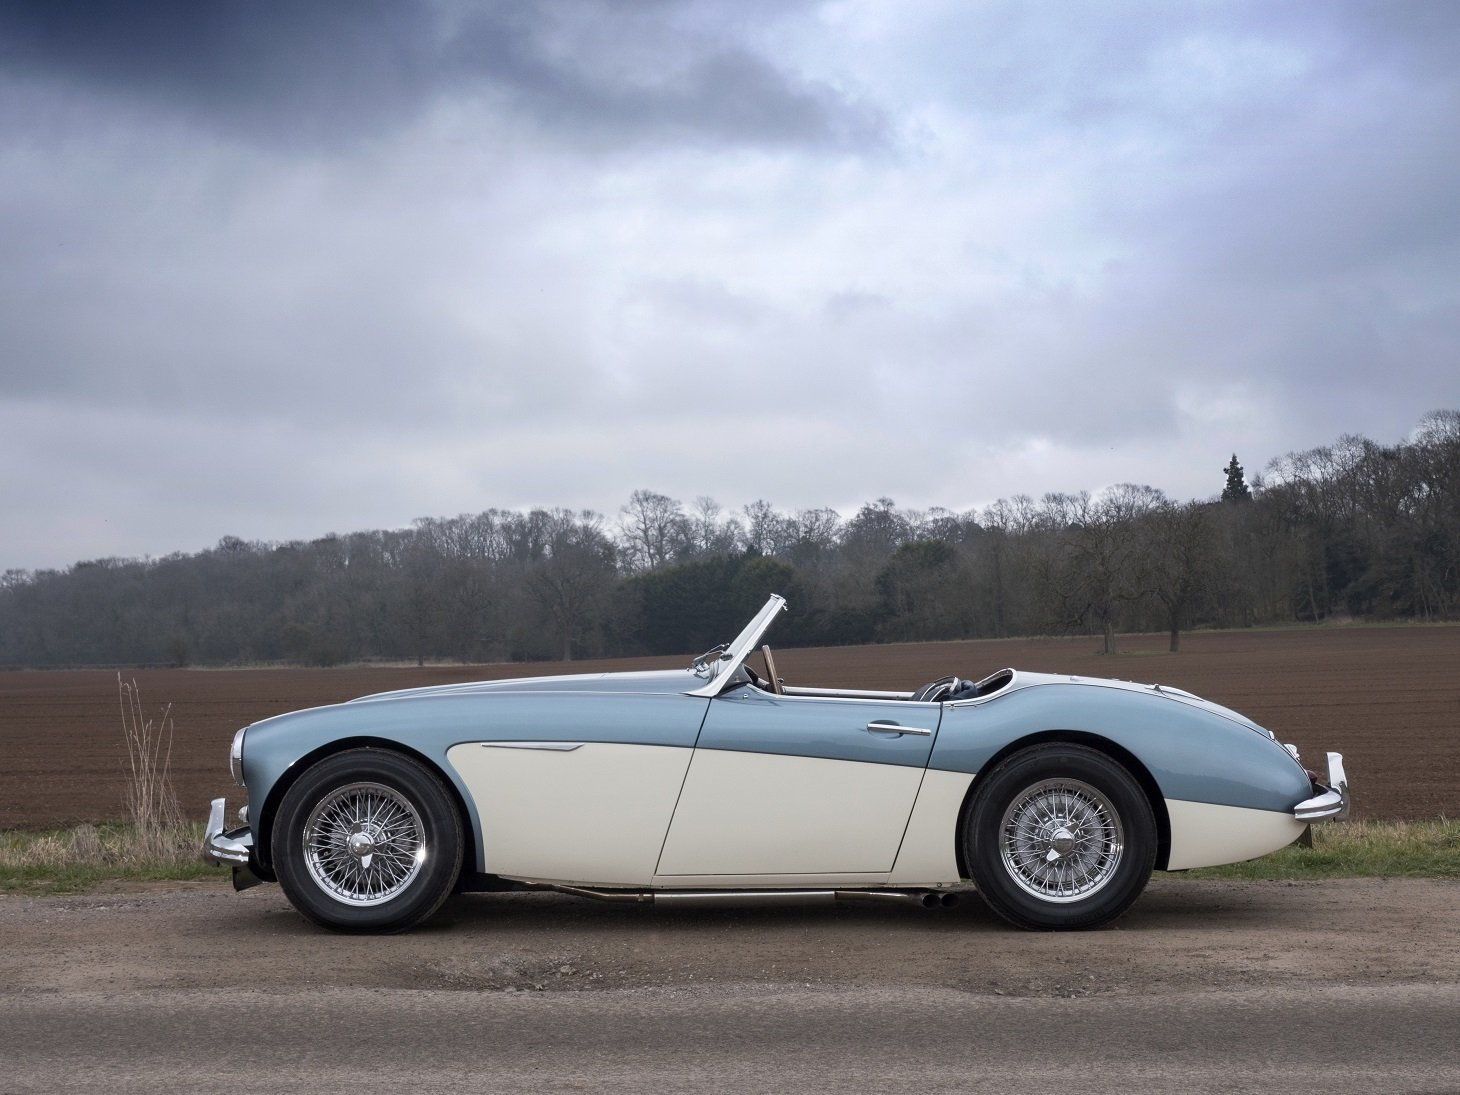 1959 Austin Healey 3000 MKI BN7 2-Seater For Sale (picture 2 of 6)